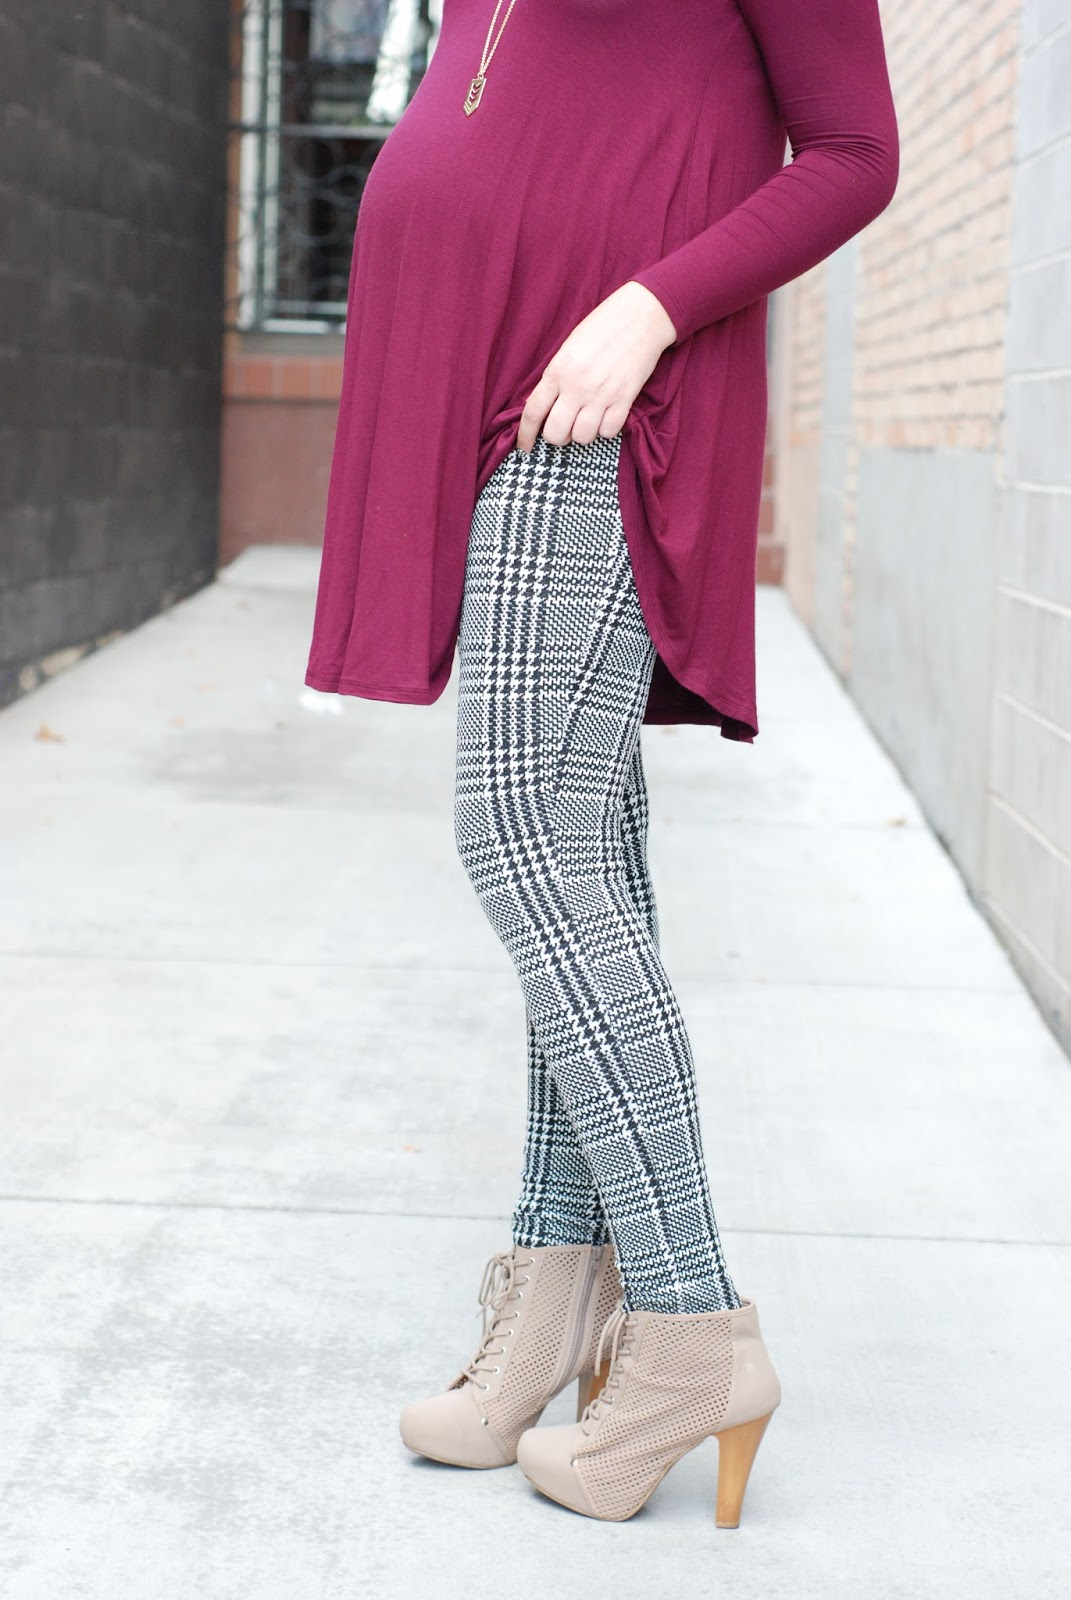 Houndstooth Leggings, Styles For Less, Utah Fashion Blogger